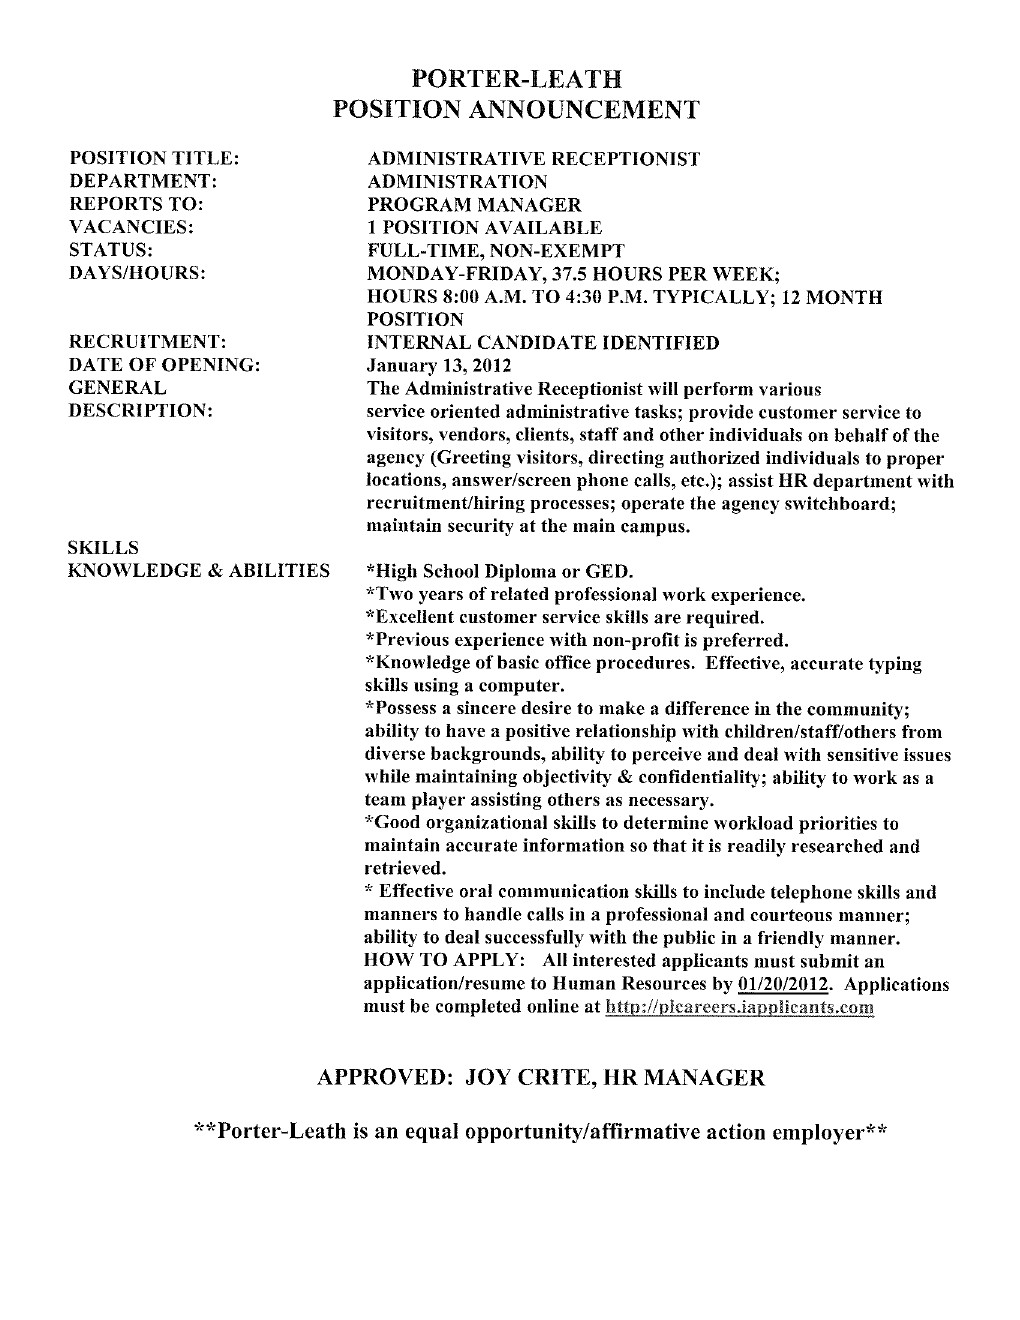 Sample Resume For Medical Receptionist   Job and Resume Template   receptionist job resume Career Cover Letter  Free Job Descriptions  Resume Samples